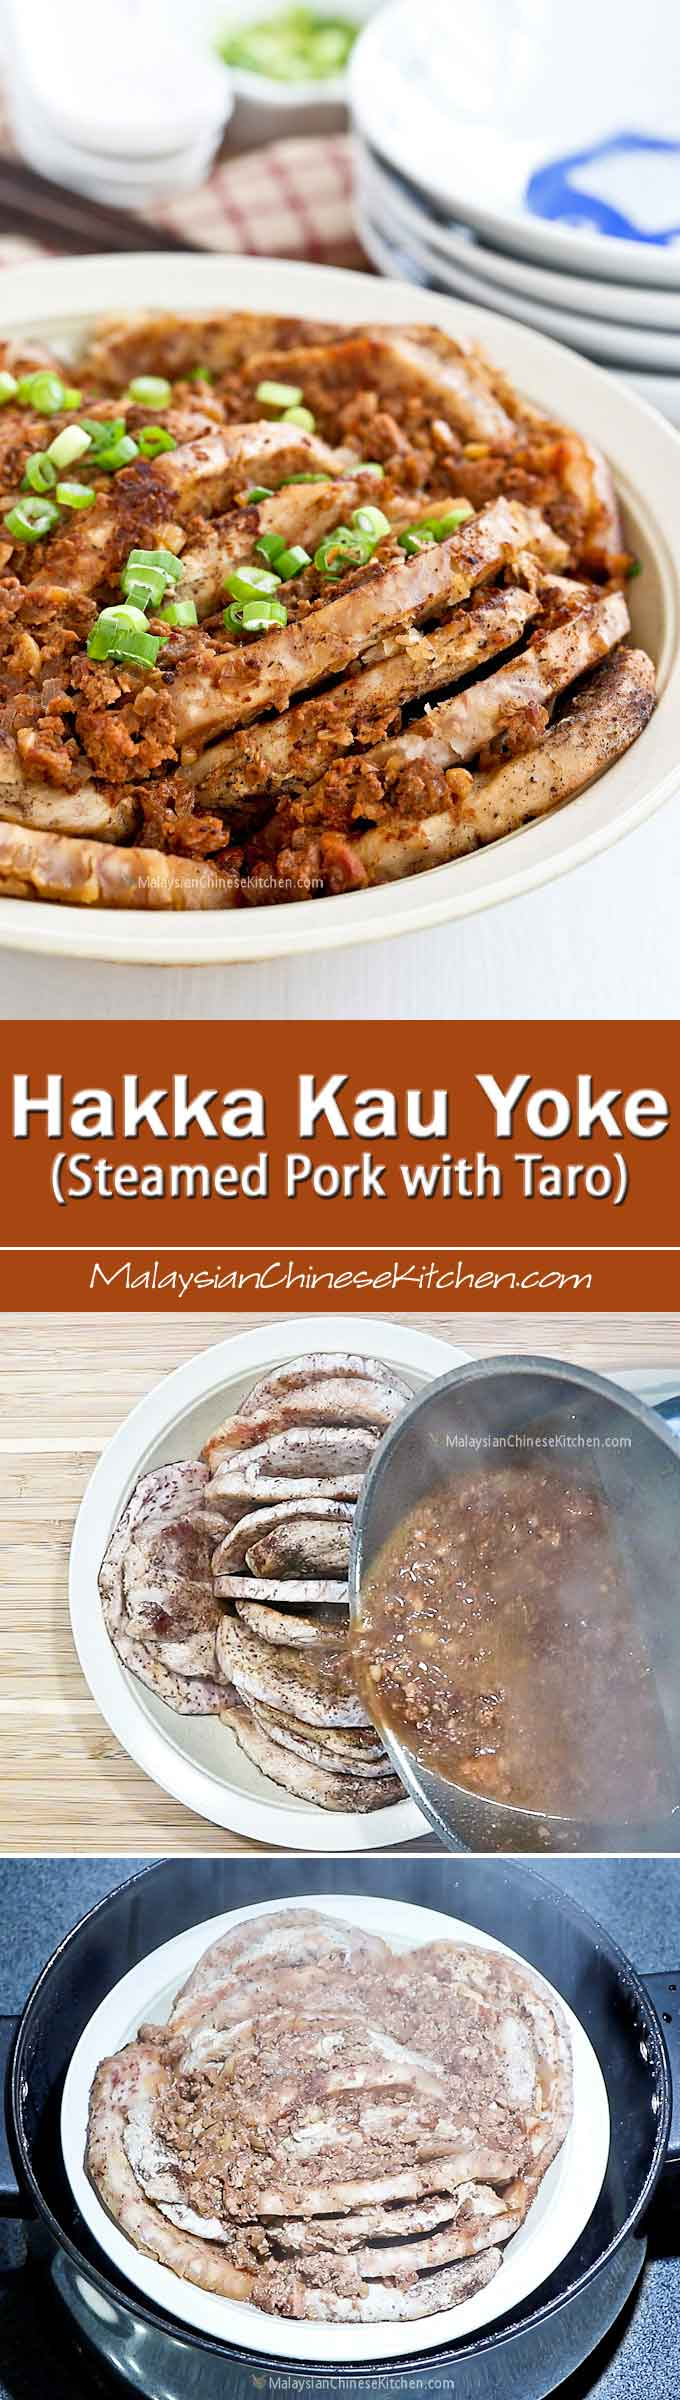 A lower fat Hakka Kau Yoke (Steamed Pork with Taro) using tender sirloin roast instead of pork belly. Much faster to cook and just as tasty. | MalaysianChineseKitchen.com